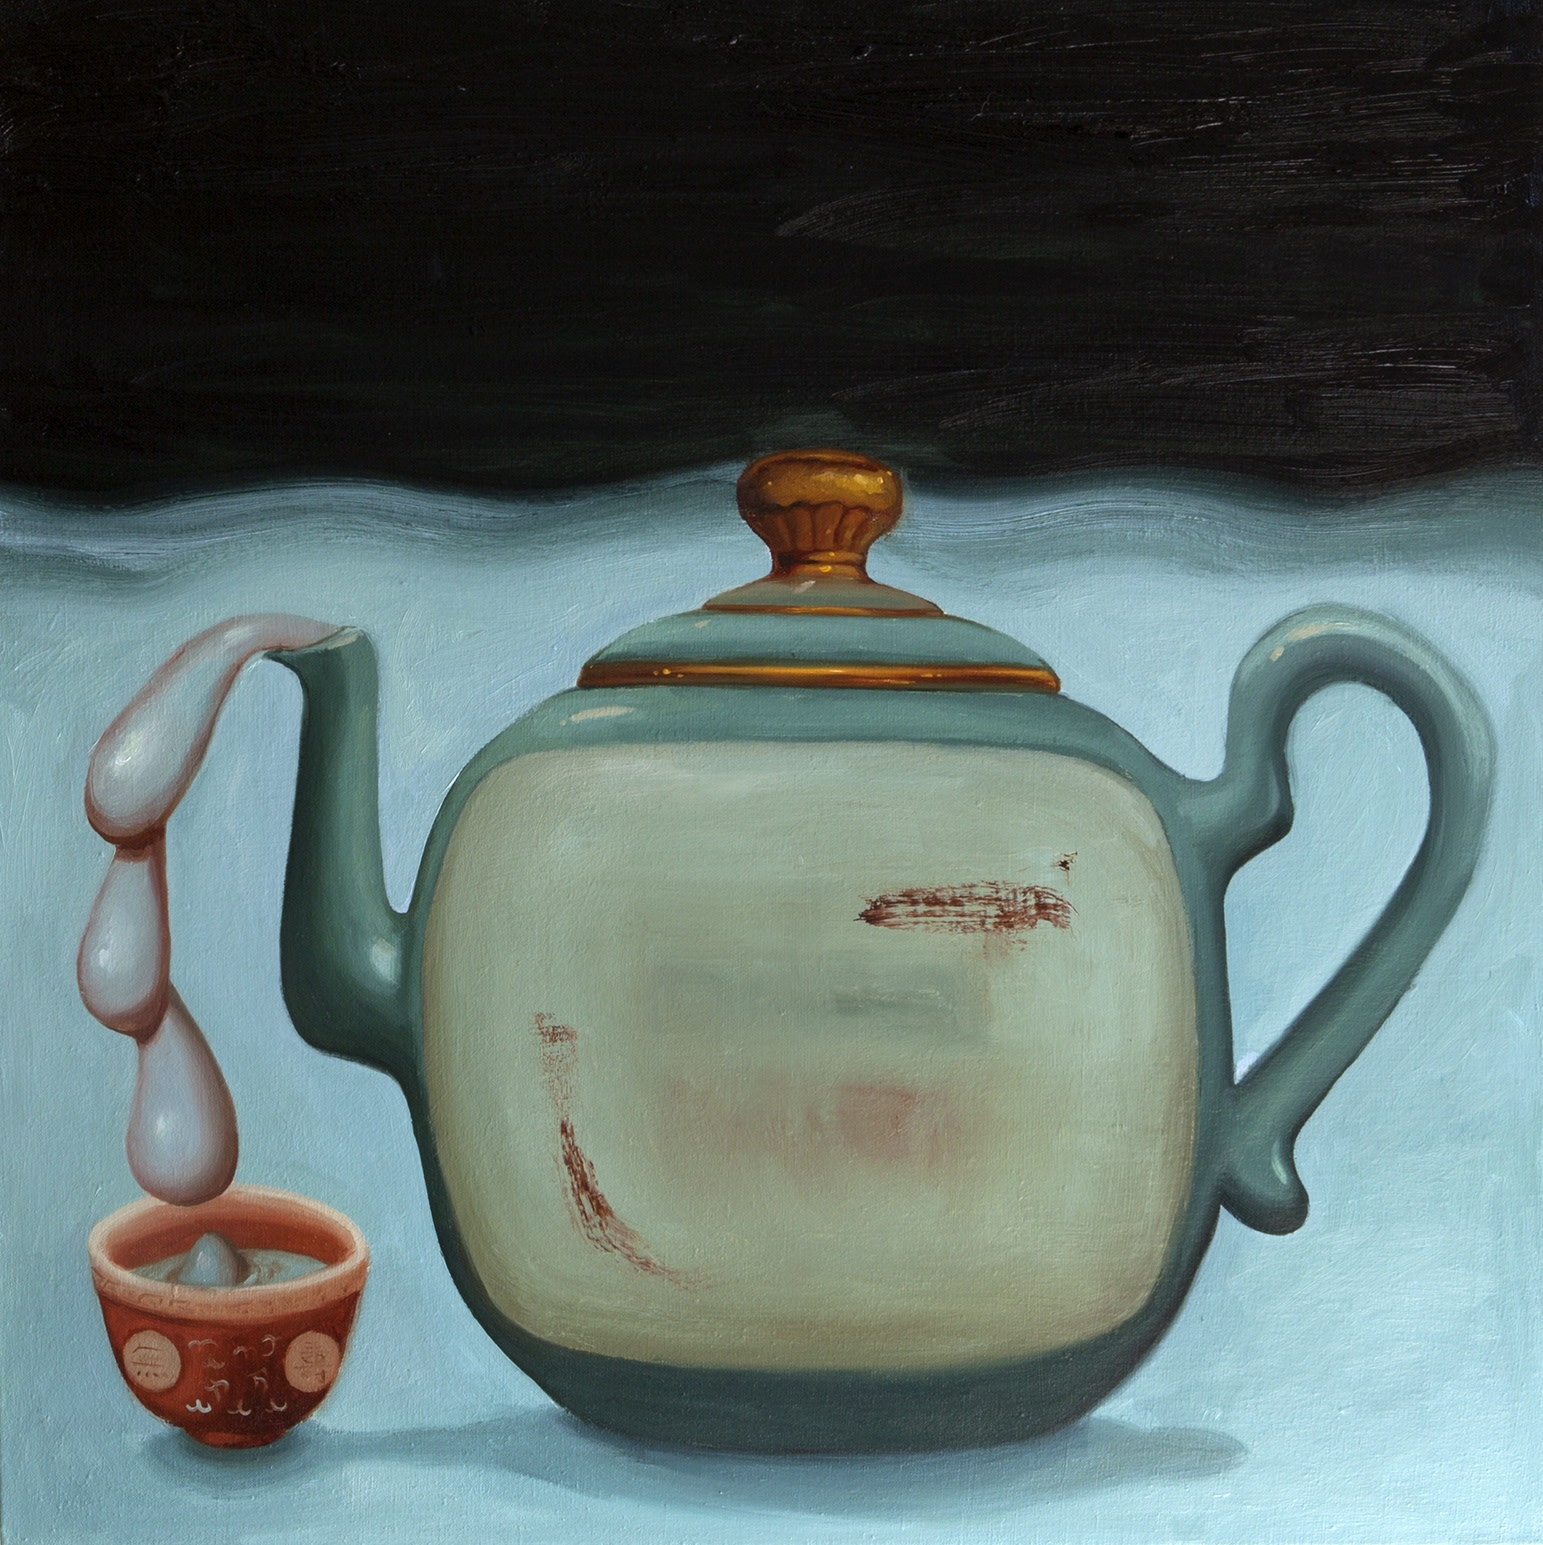 Dominique Fung Tea Time, Me Time, 2019 Oil on linen 76.2cm x 76.2 cm 30 x 30 in.